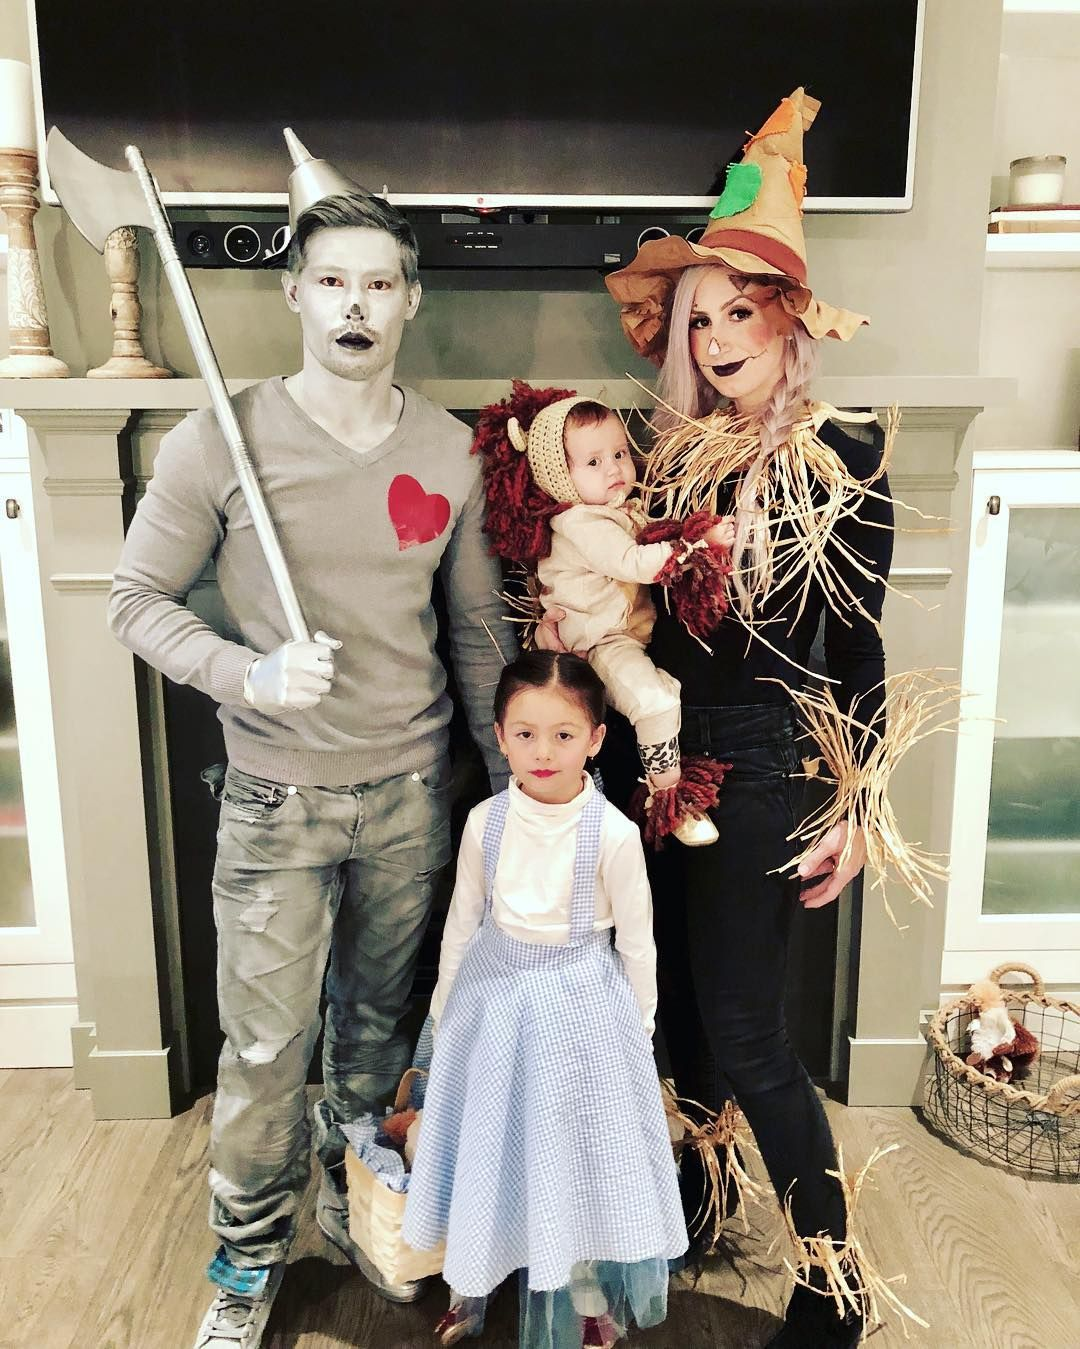 Family Halloween Costumes With A Baby 21 Ideas Family Halloween Costumes Baby Halloween Costumes Cute Halloween Costumes